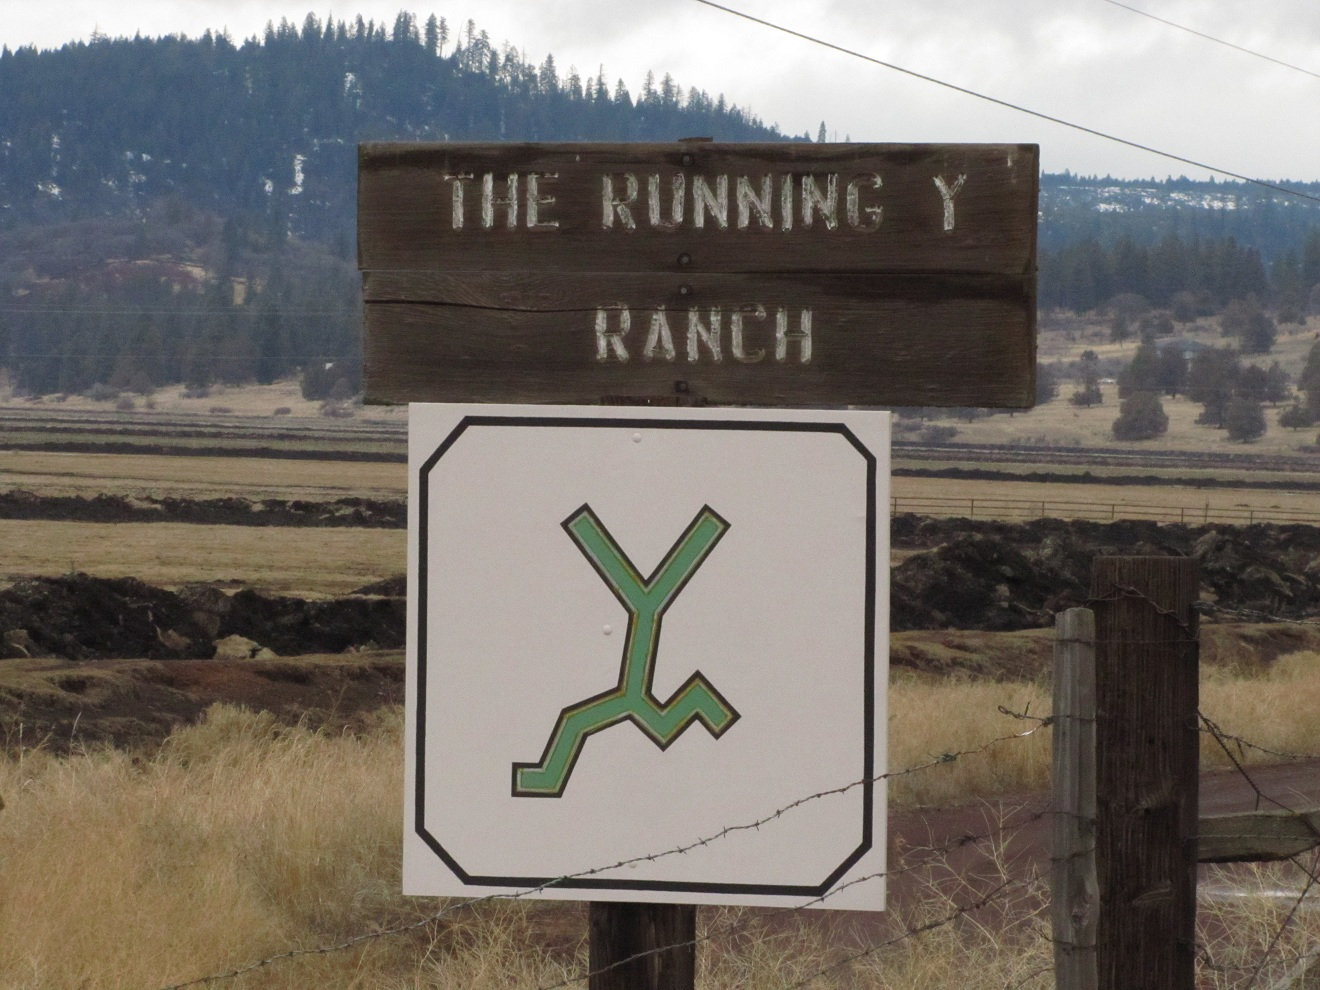 Sign at the Running Y Ranch.